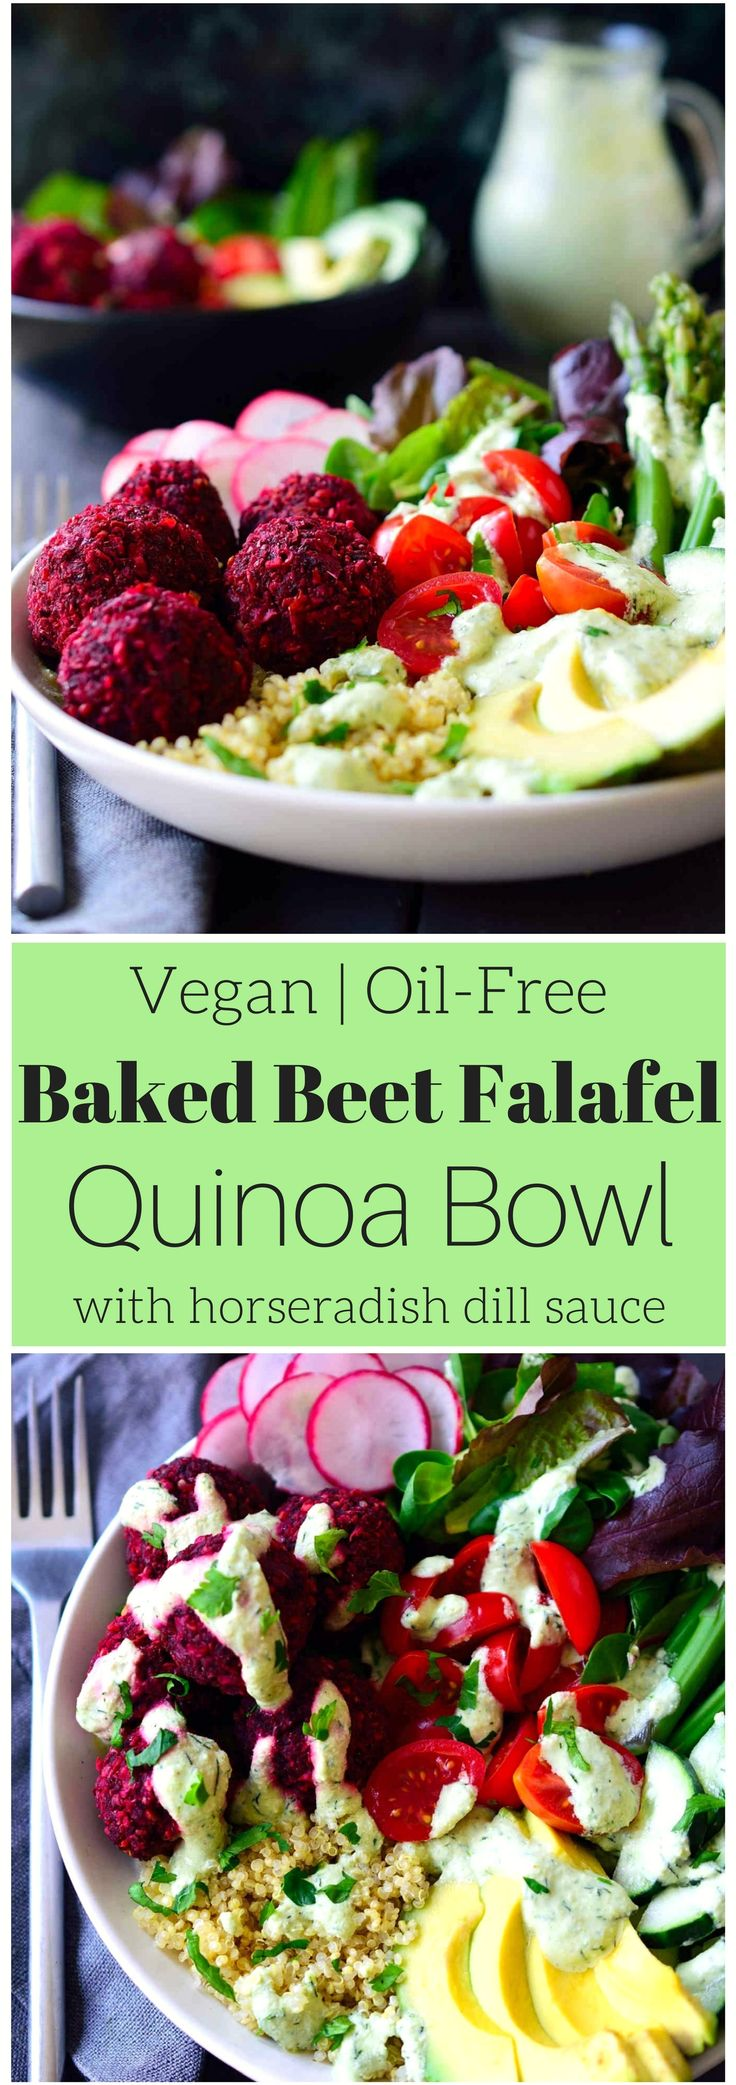 You'll get a whole, balanced and filling meal in just one dish with this baked beet falafel vegan quinoa bowl with horseradish dill sauce. Beet falafel is a great twist on traditional falafel with the same great taste and an extra dose of veggies. They're baked rather than fried for a healthier and oil-free recipe and served on a bed of quinoa and a mix of delicious raw and lightly cooked vegetables.